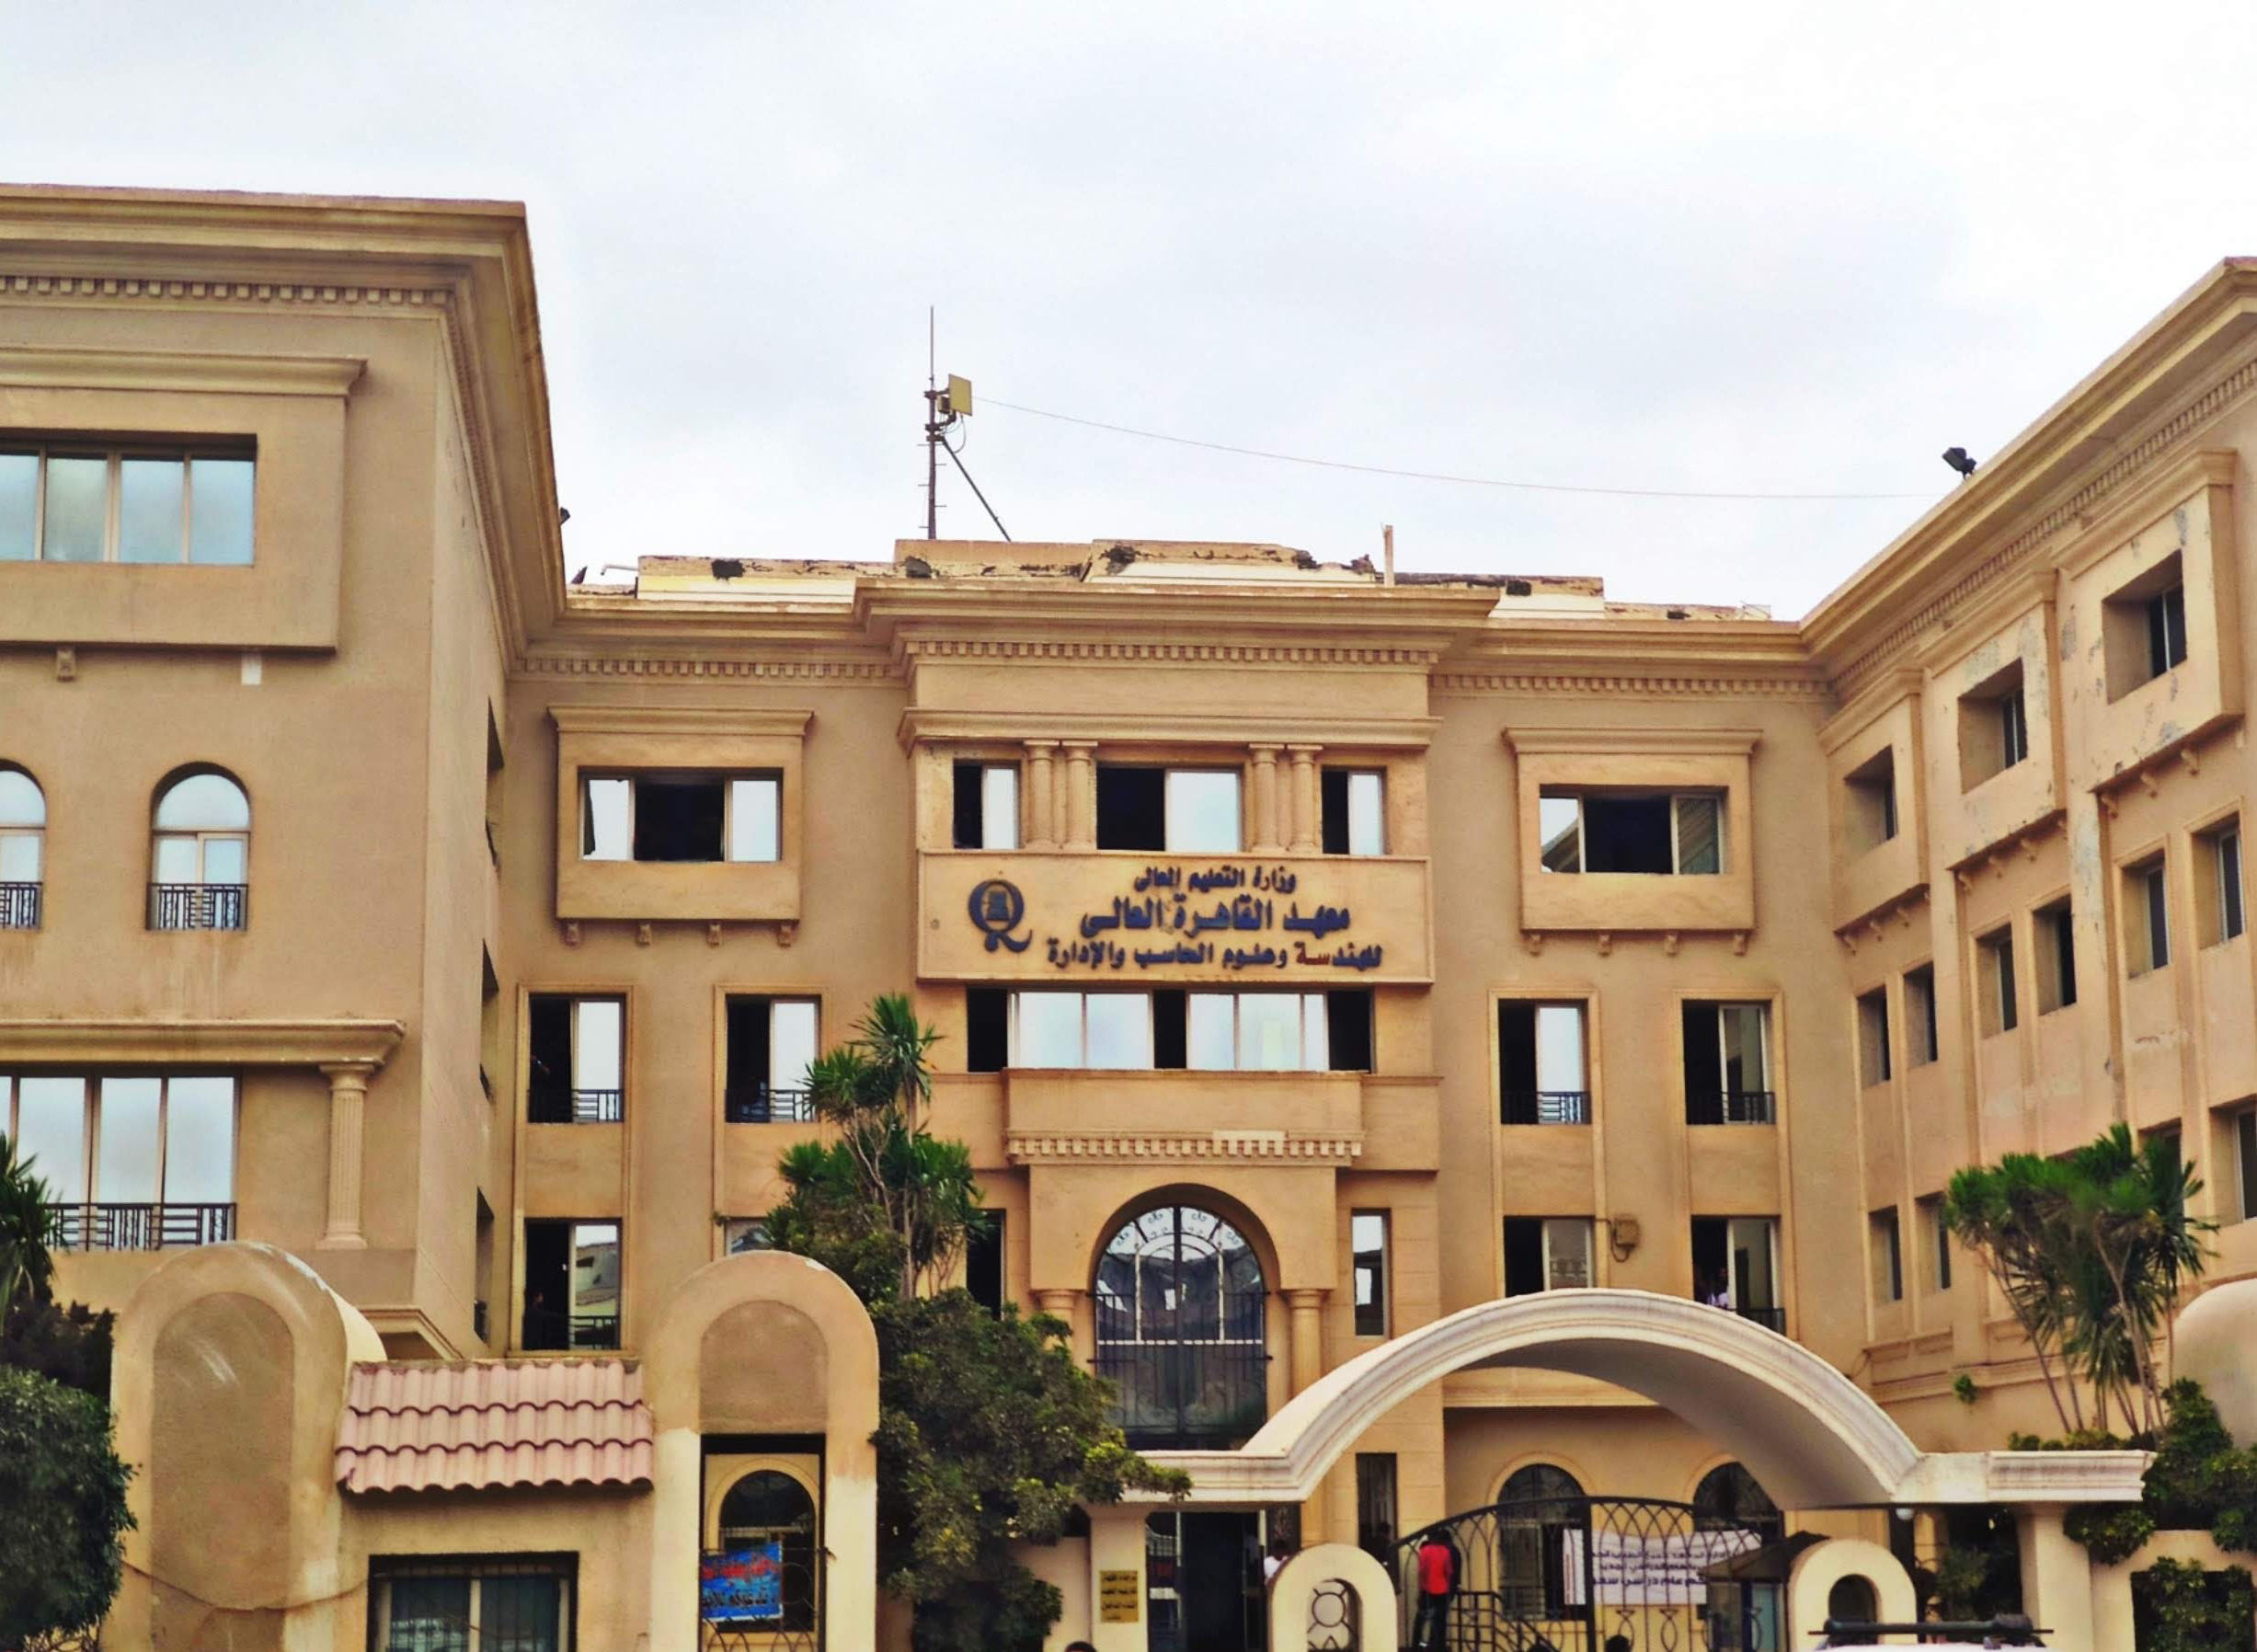 Cairo Higher Institute of Engineering, Computer Science and Management - Albanfsg 2